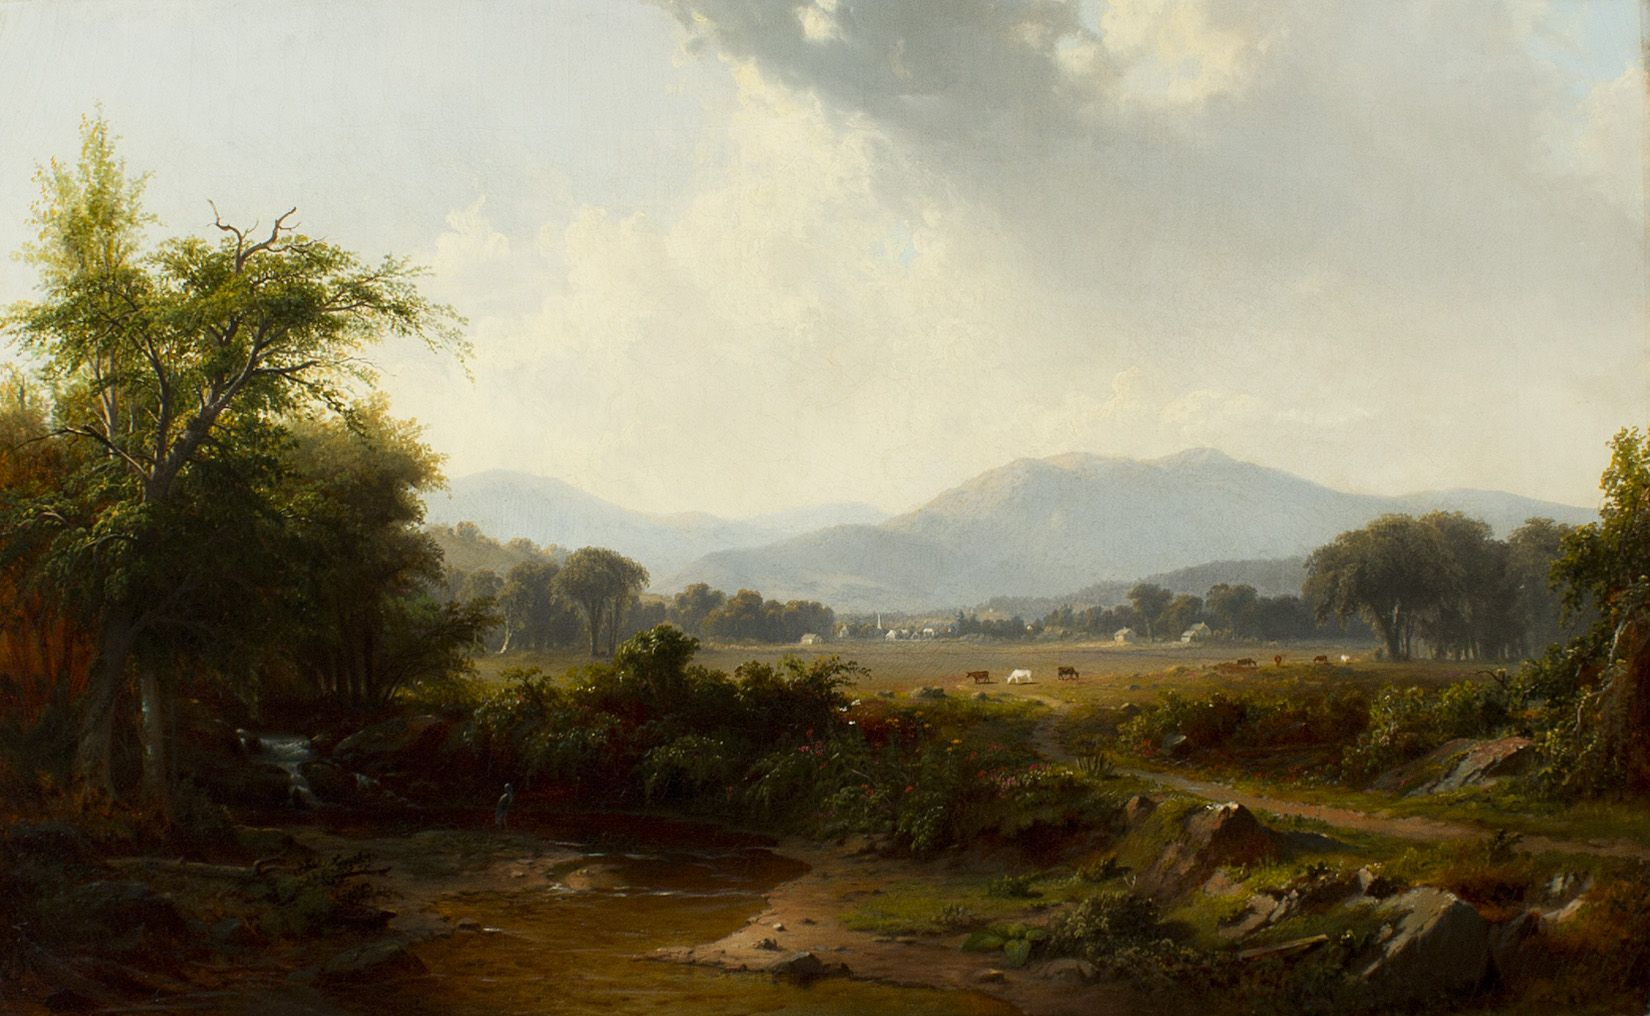 Robert Seldon Duncanson (1821-1872), Short Mountain, Hawkins County, Tennessee, circa 1852